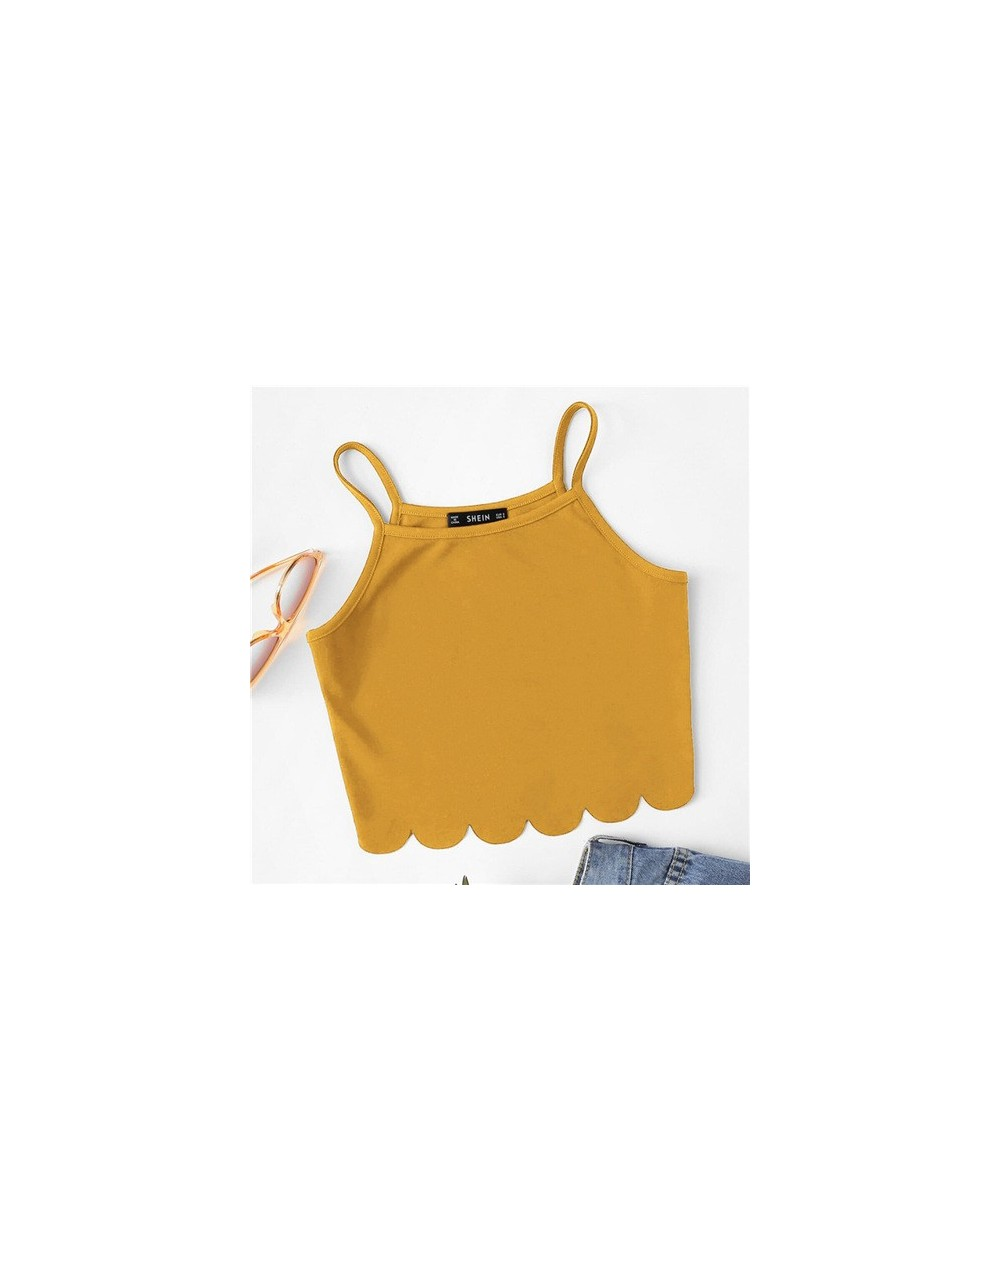 Summer Red Tank Crop Top Vest Woman Vacation Casual Scallop Hem Crop Spaghetti Strap Slim Cami Top - Ginger - 4P3961056803-2